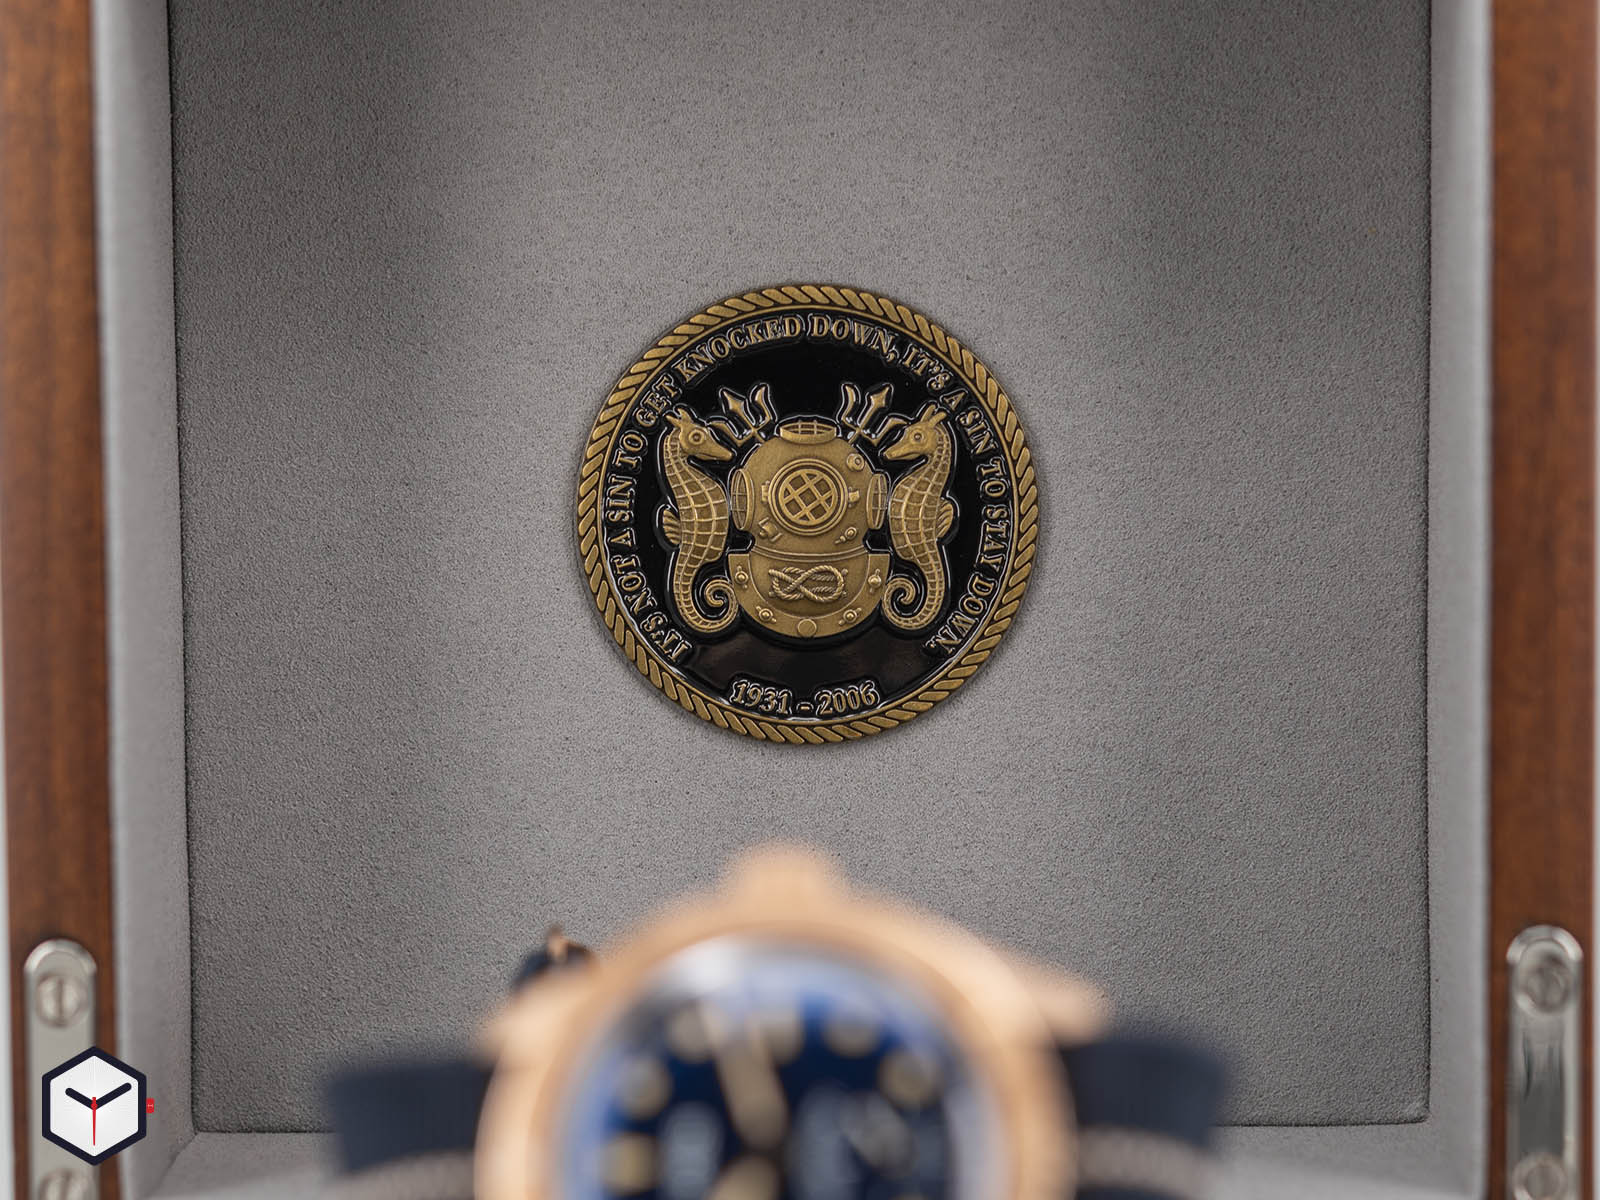 01-401-7764-3185-oris-carl-brashear-calibre-401-limited-edition-9.jpg